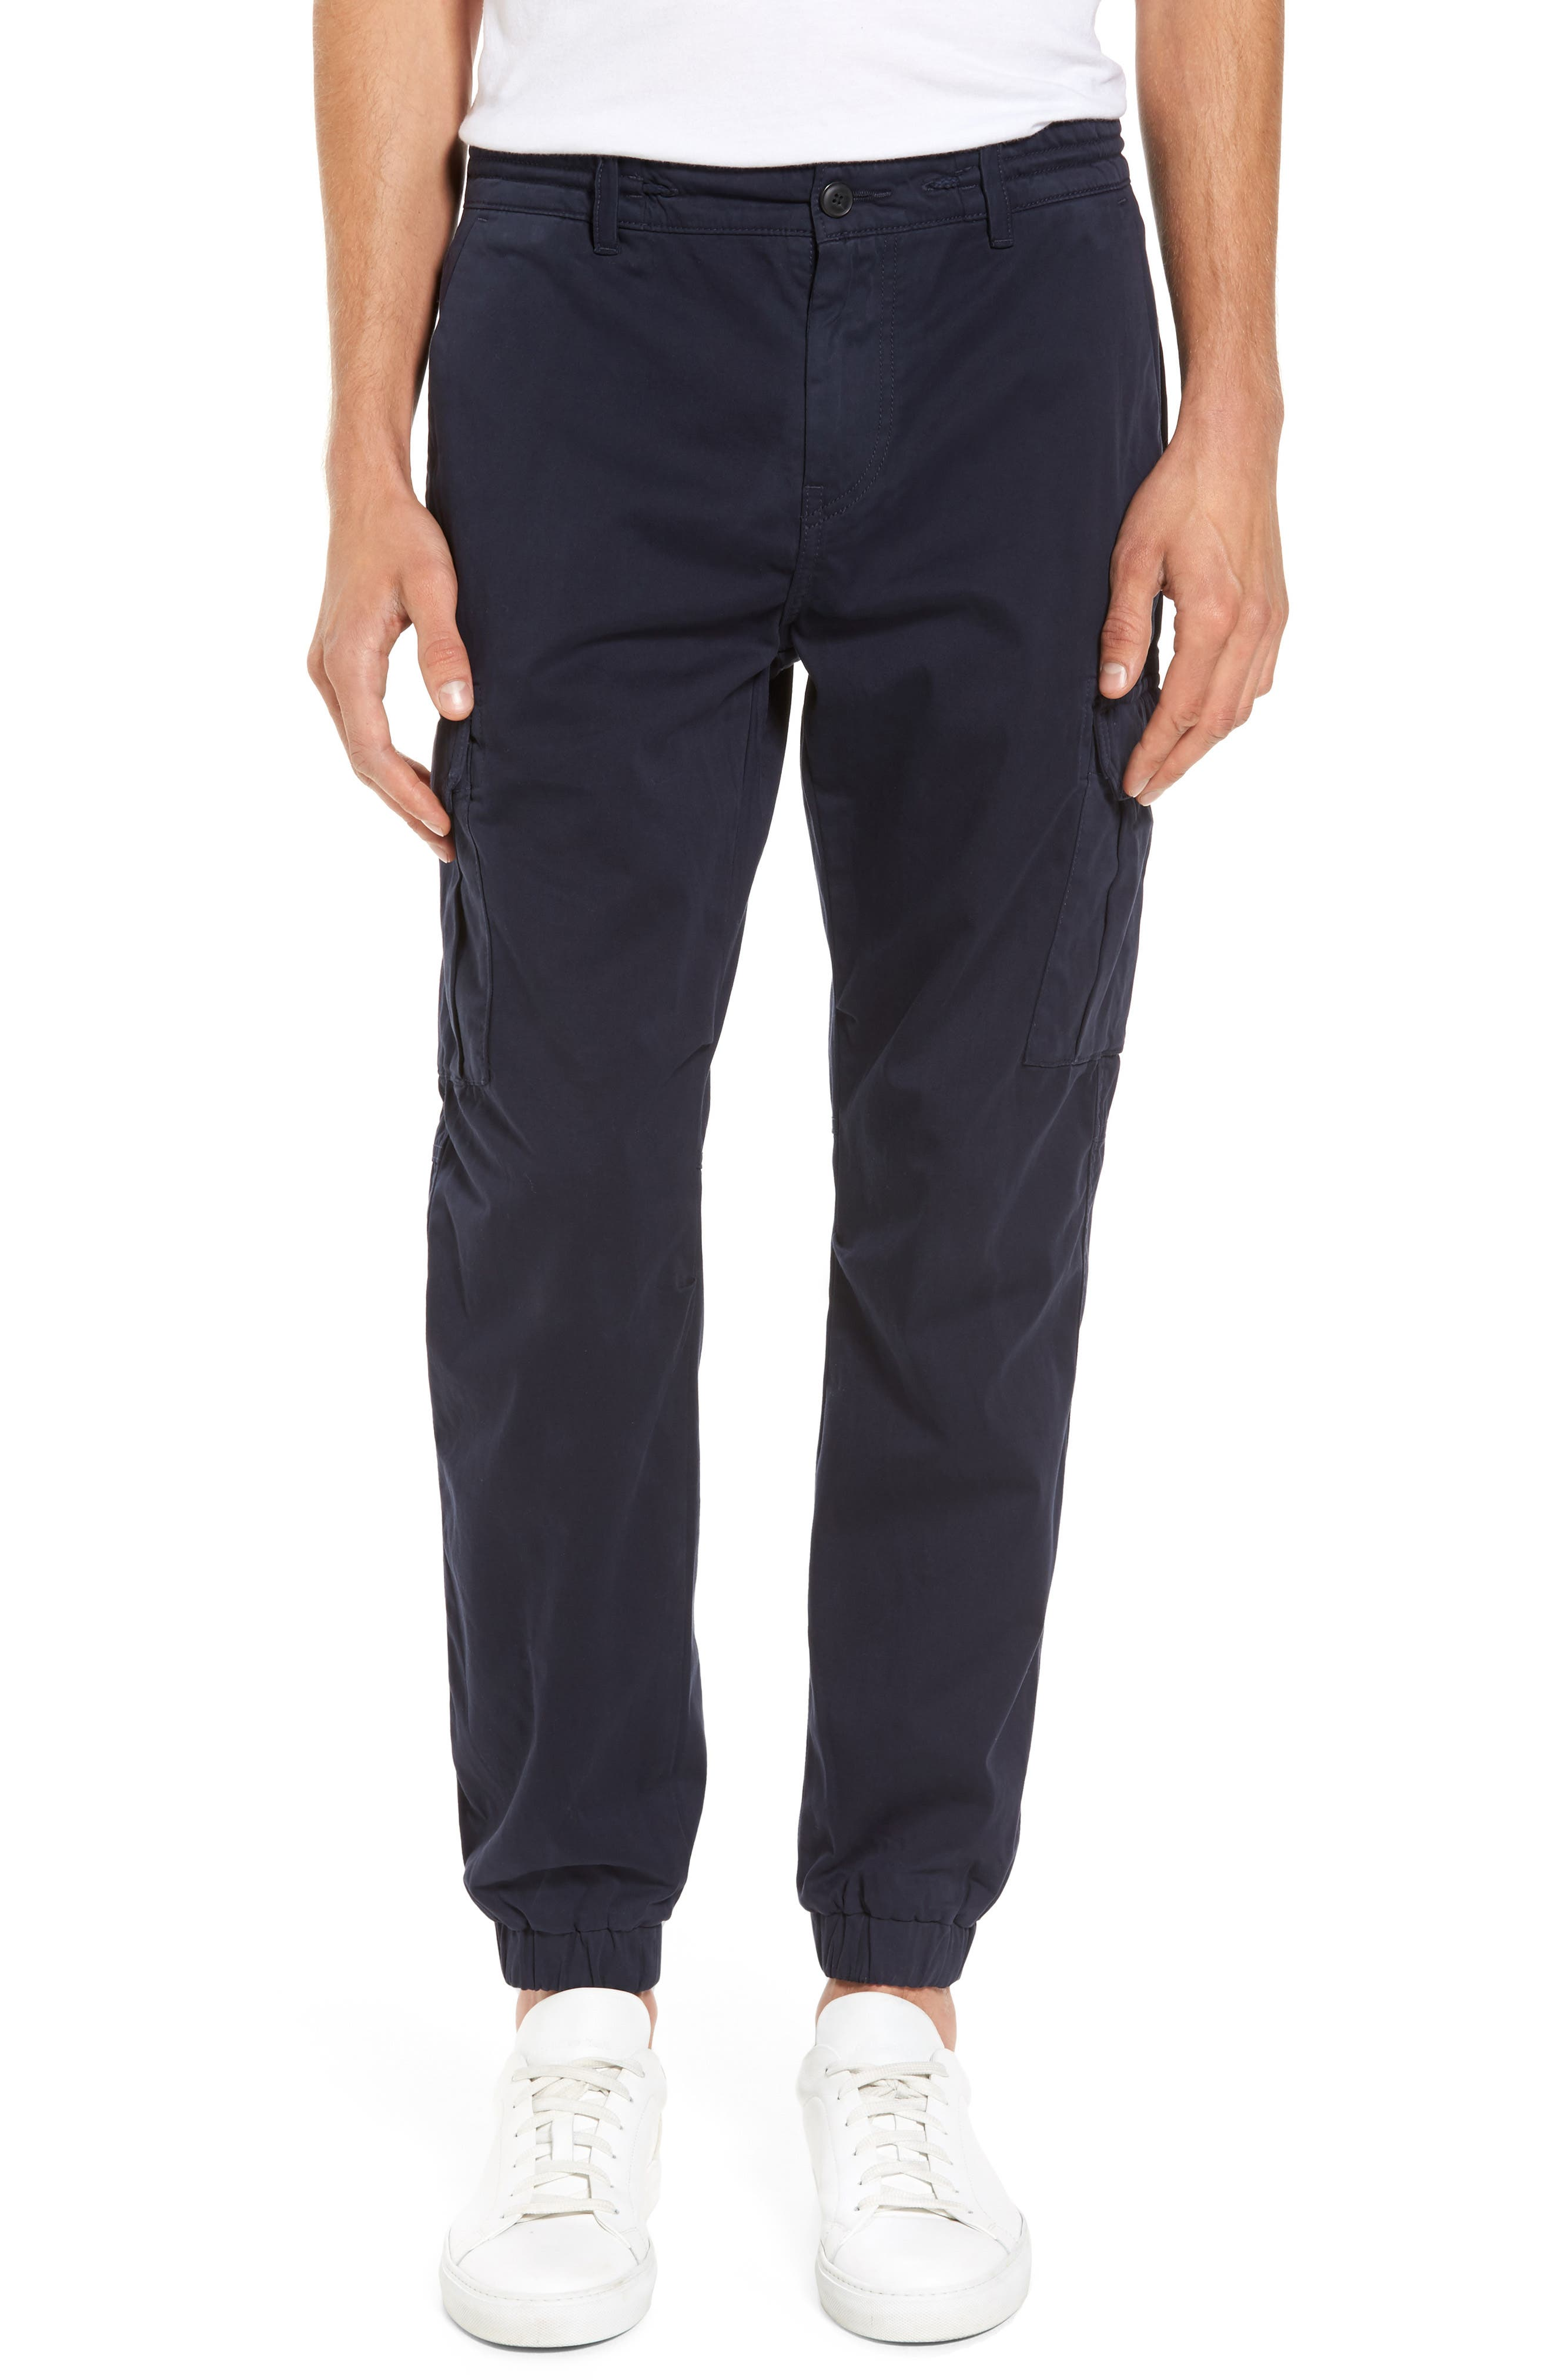 Shay 2 Cargo Pants,                         Main,                         color, Navy